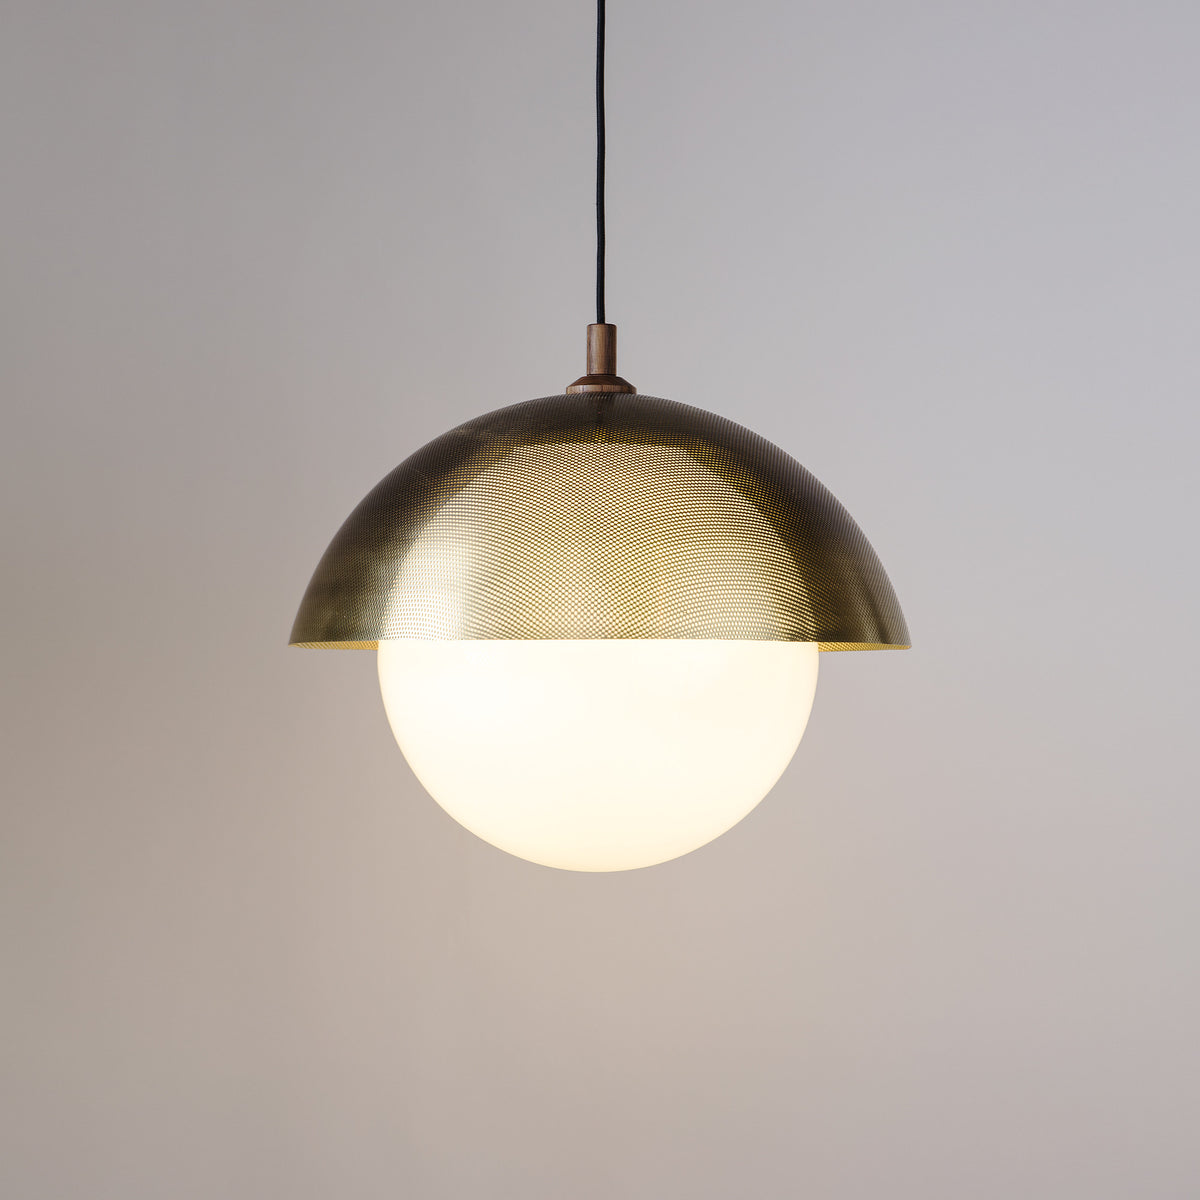 free hammered hand pendant home shade shipping today overstock copper garden product dome light